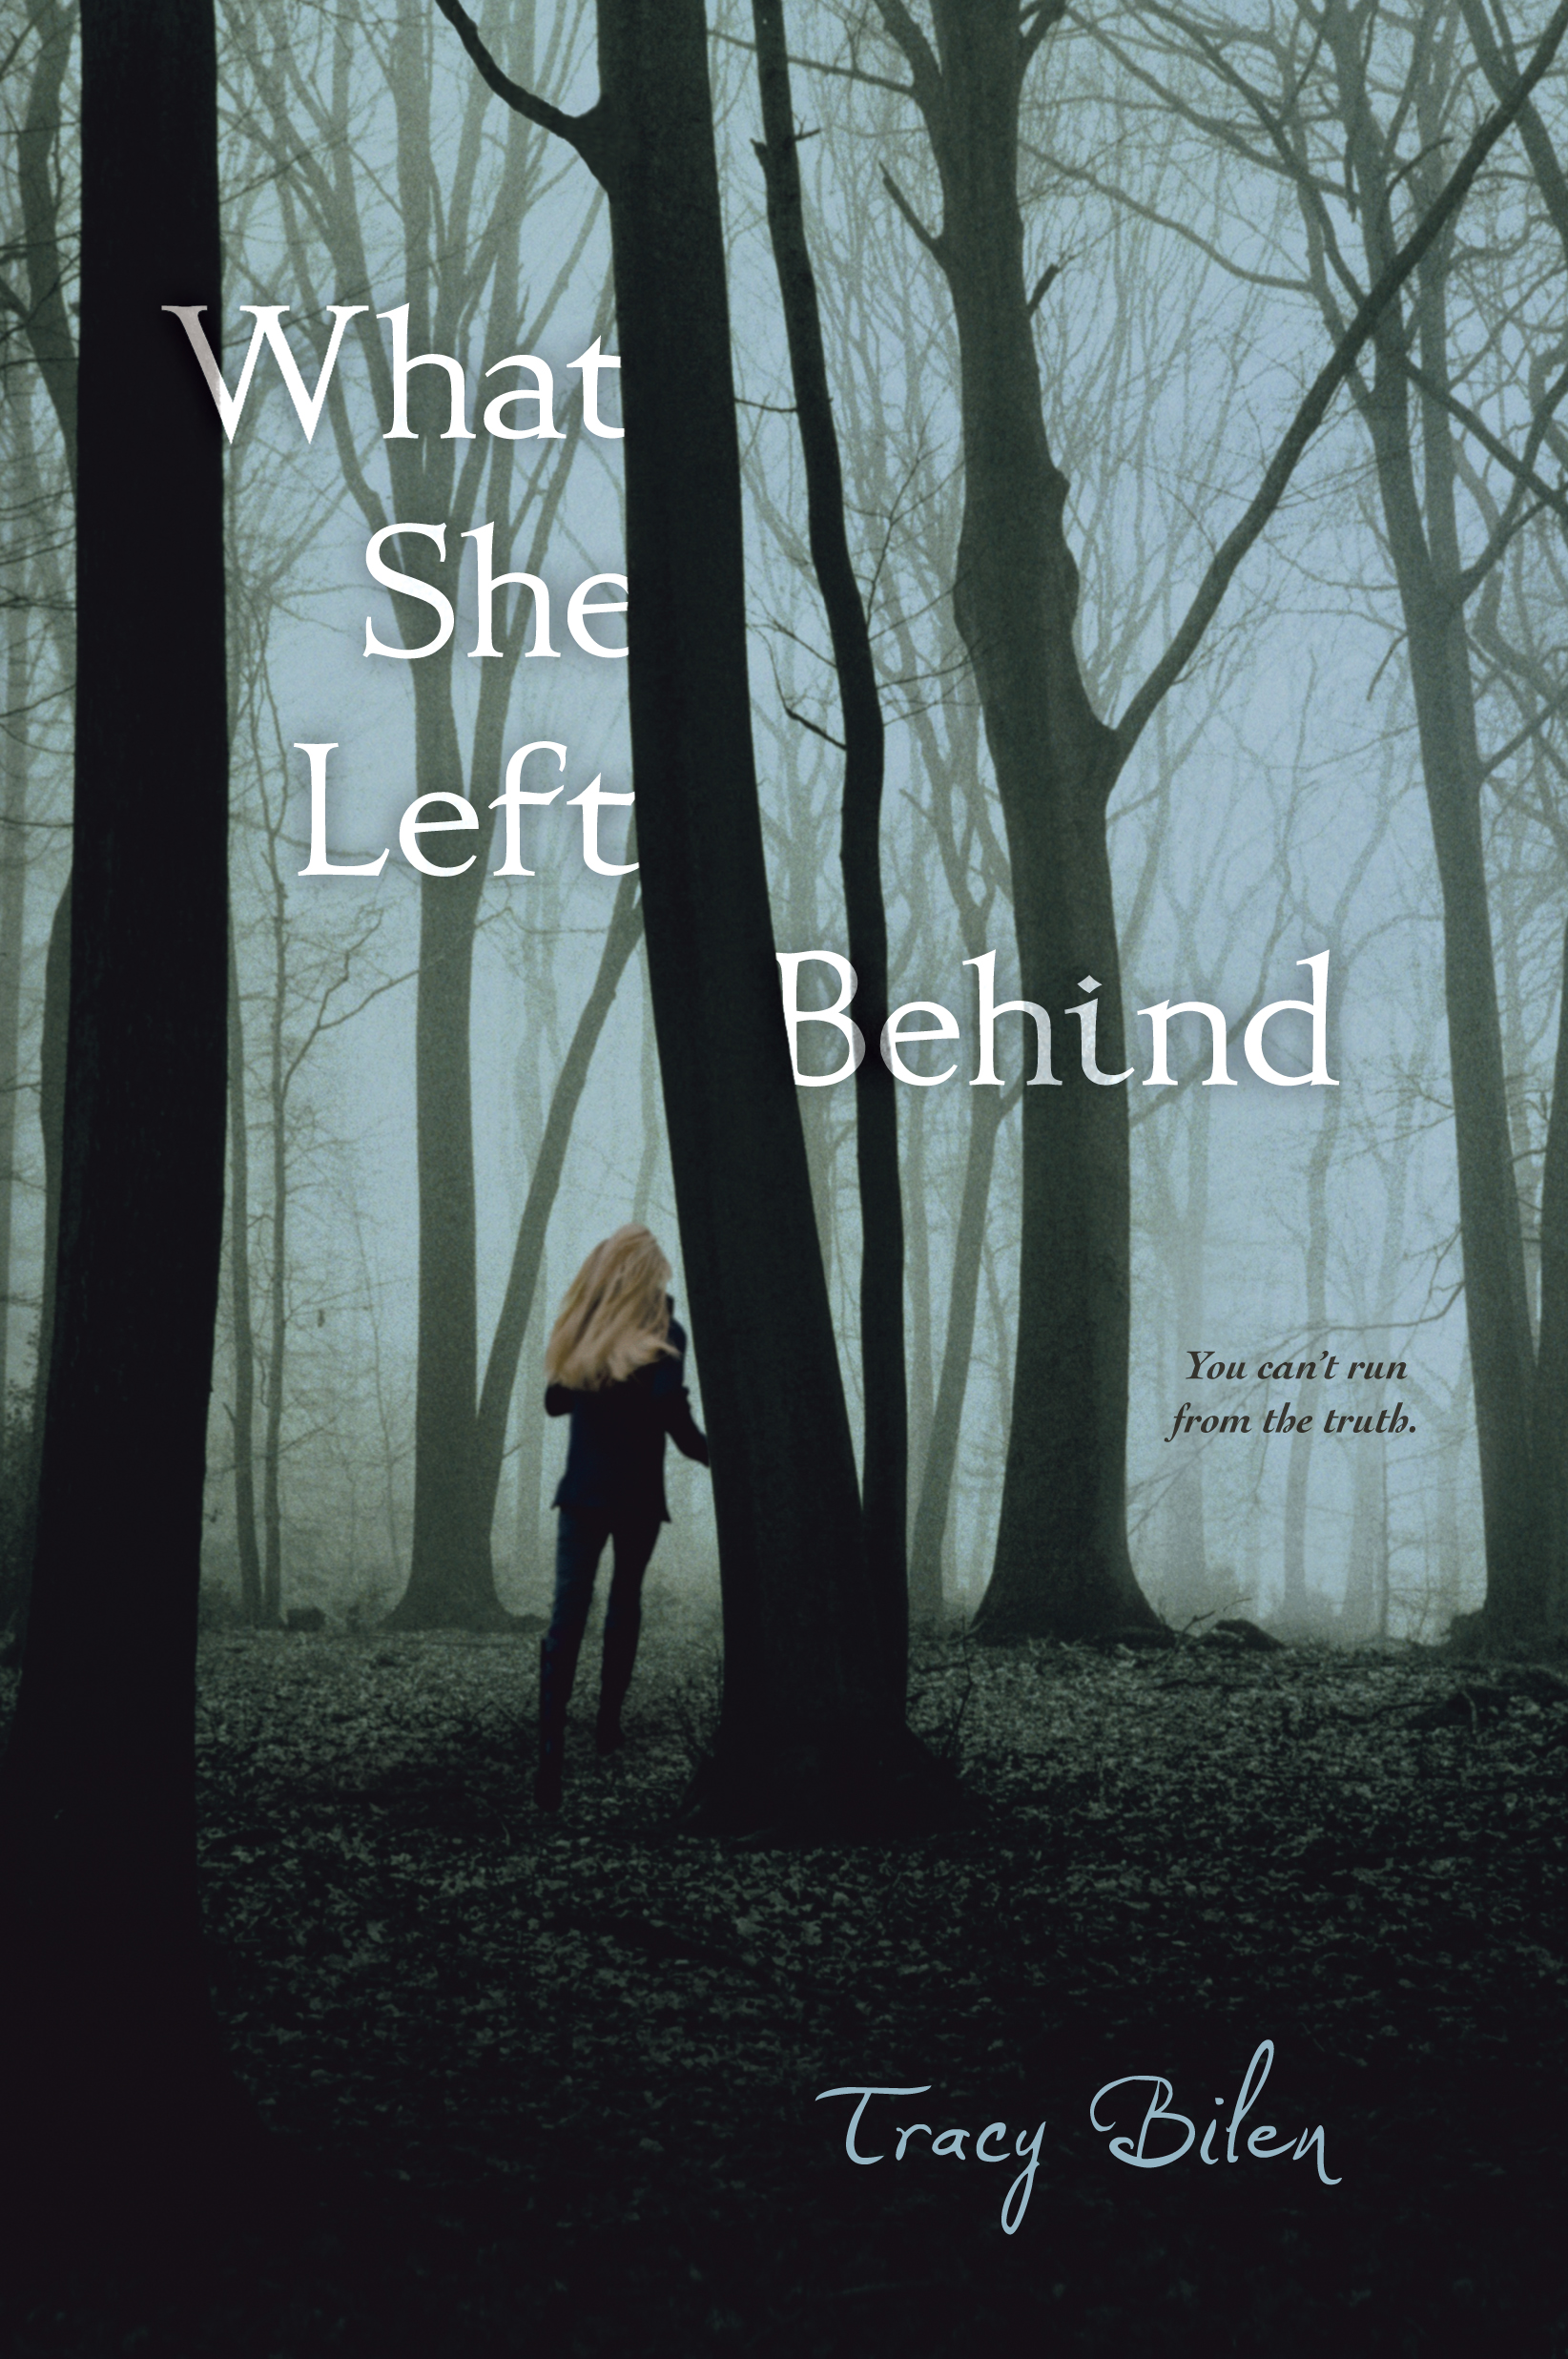 http://www.amazon.com/What-Left-Behind-Tracy-Bilen-ebook/dp/B005C75MKY/ref=sr_1_2?s=digital-text&ie=UTF8&qid=1402698453&sr=1-2&keywords=what+she+left+behind